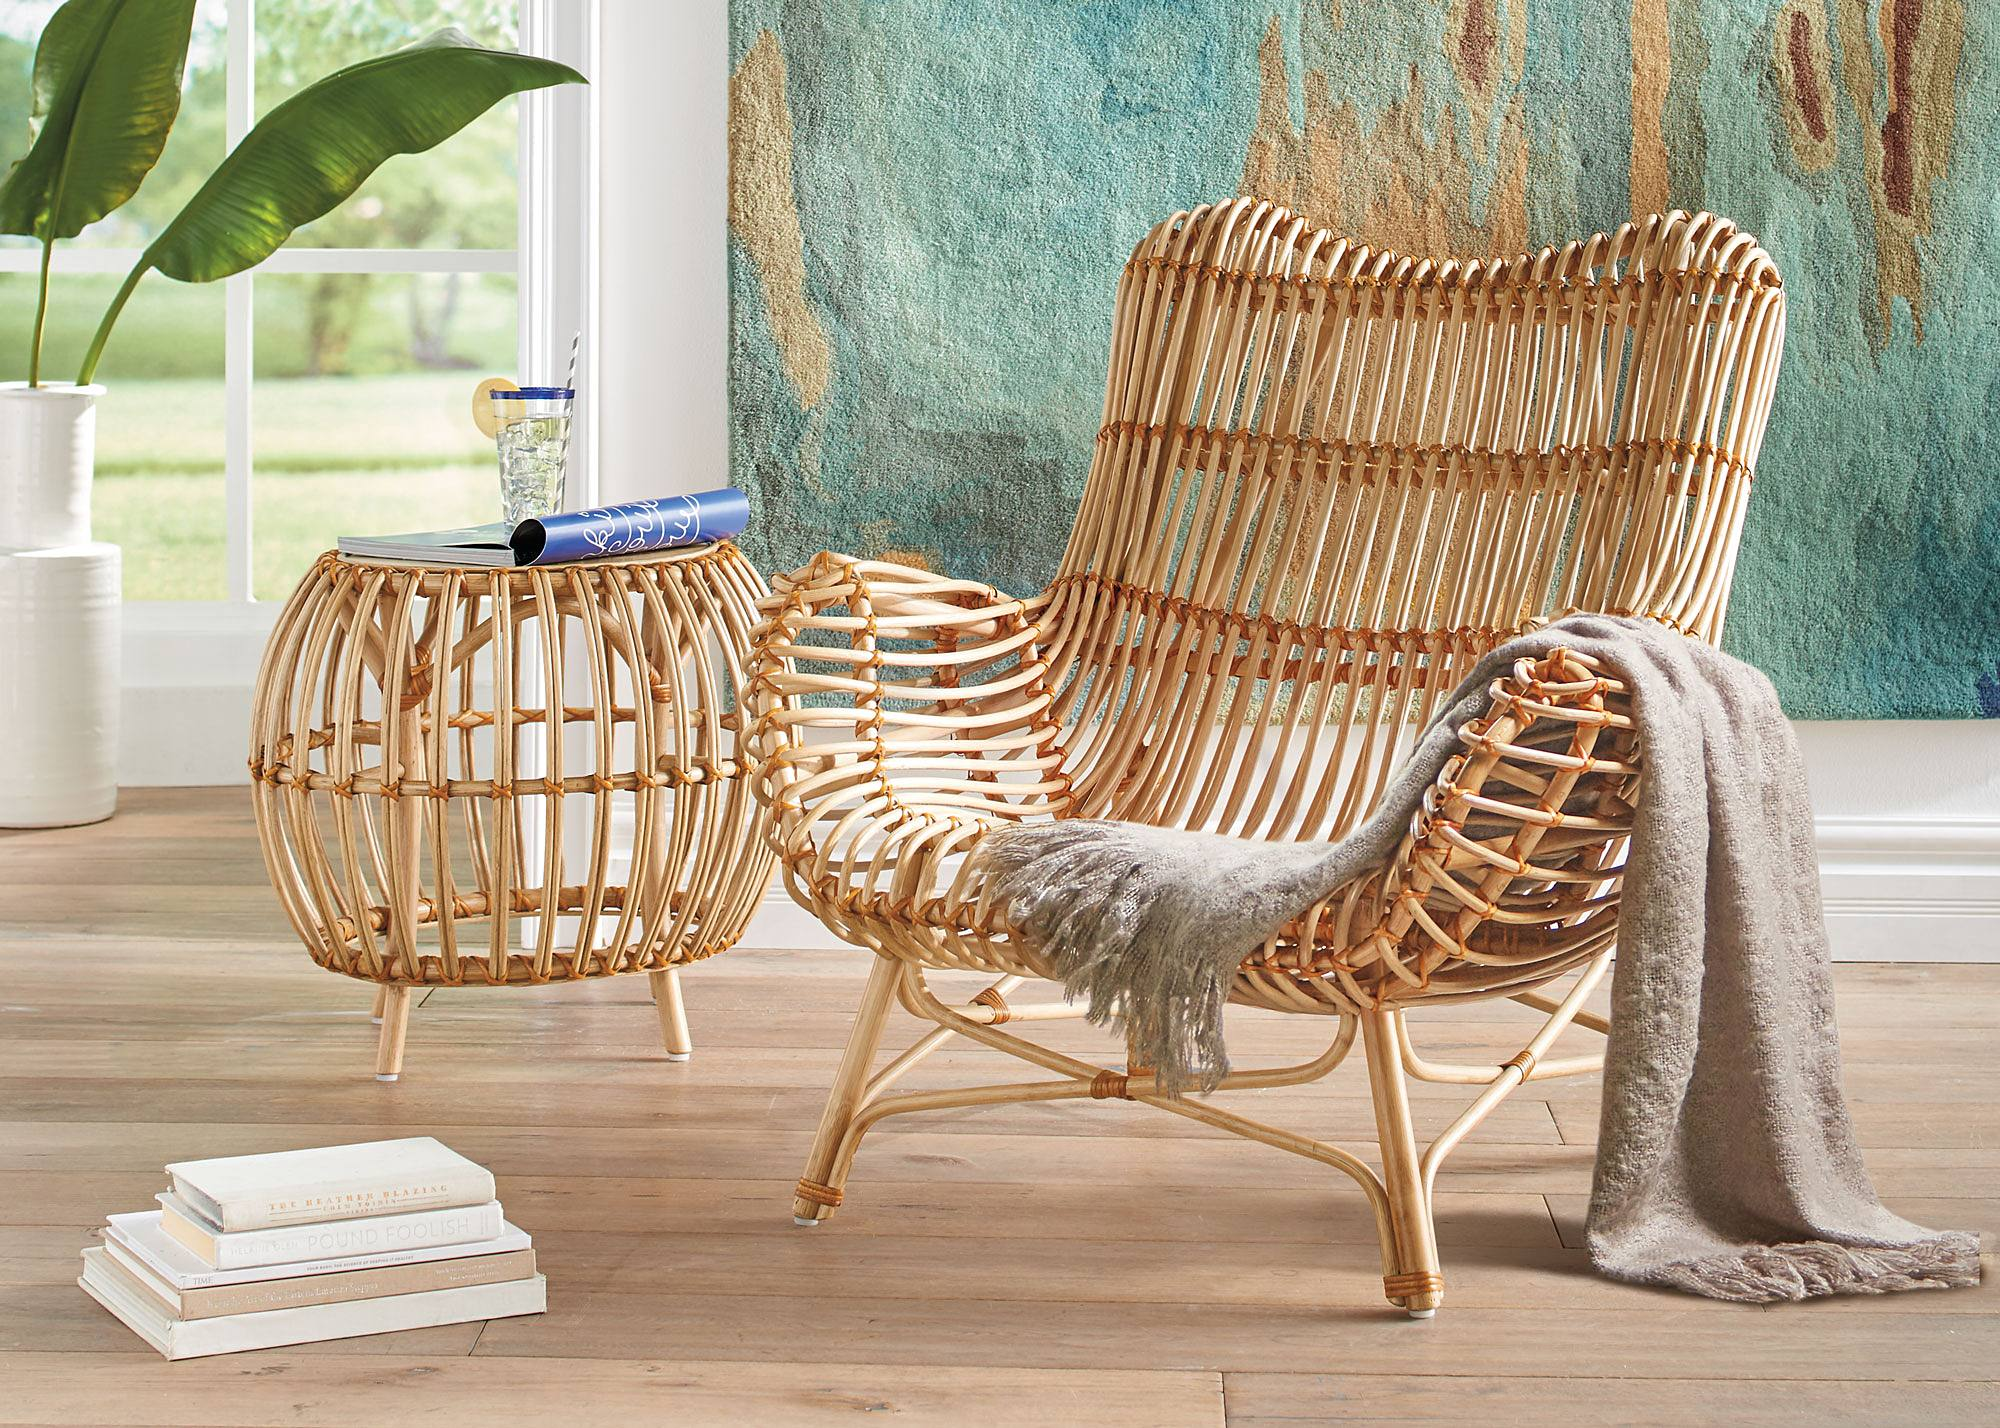 All of elements of the Kubu and Paloma are hand selected from raw  materials  hand prepped  and hand woven  Our product manager watched as  pieces of rattan. Indoor Rattan Furniture  A Natural Art Form   Grandin Road Blog